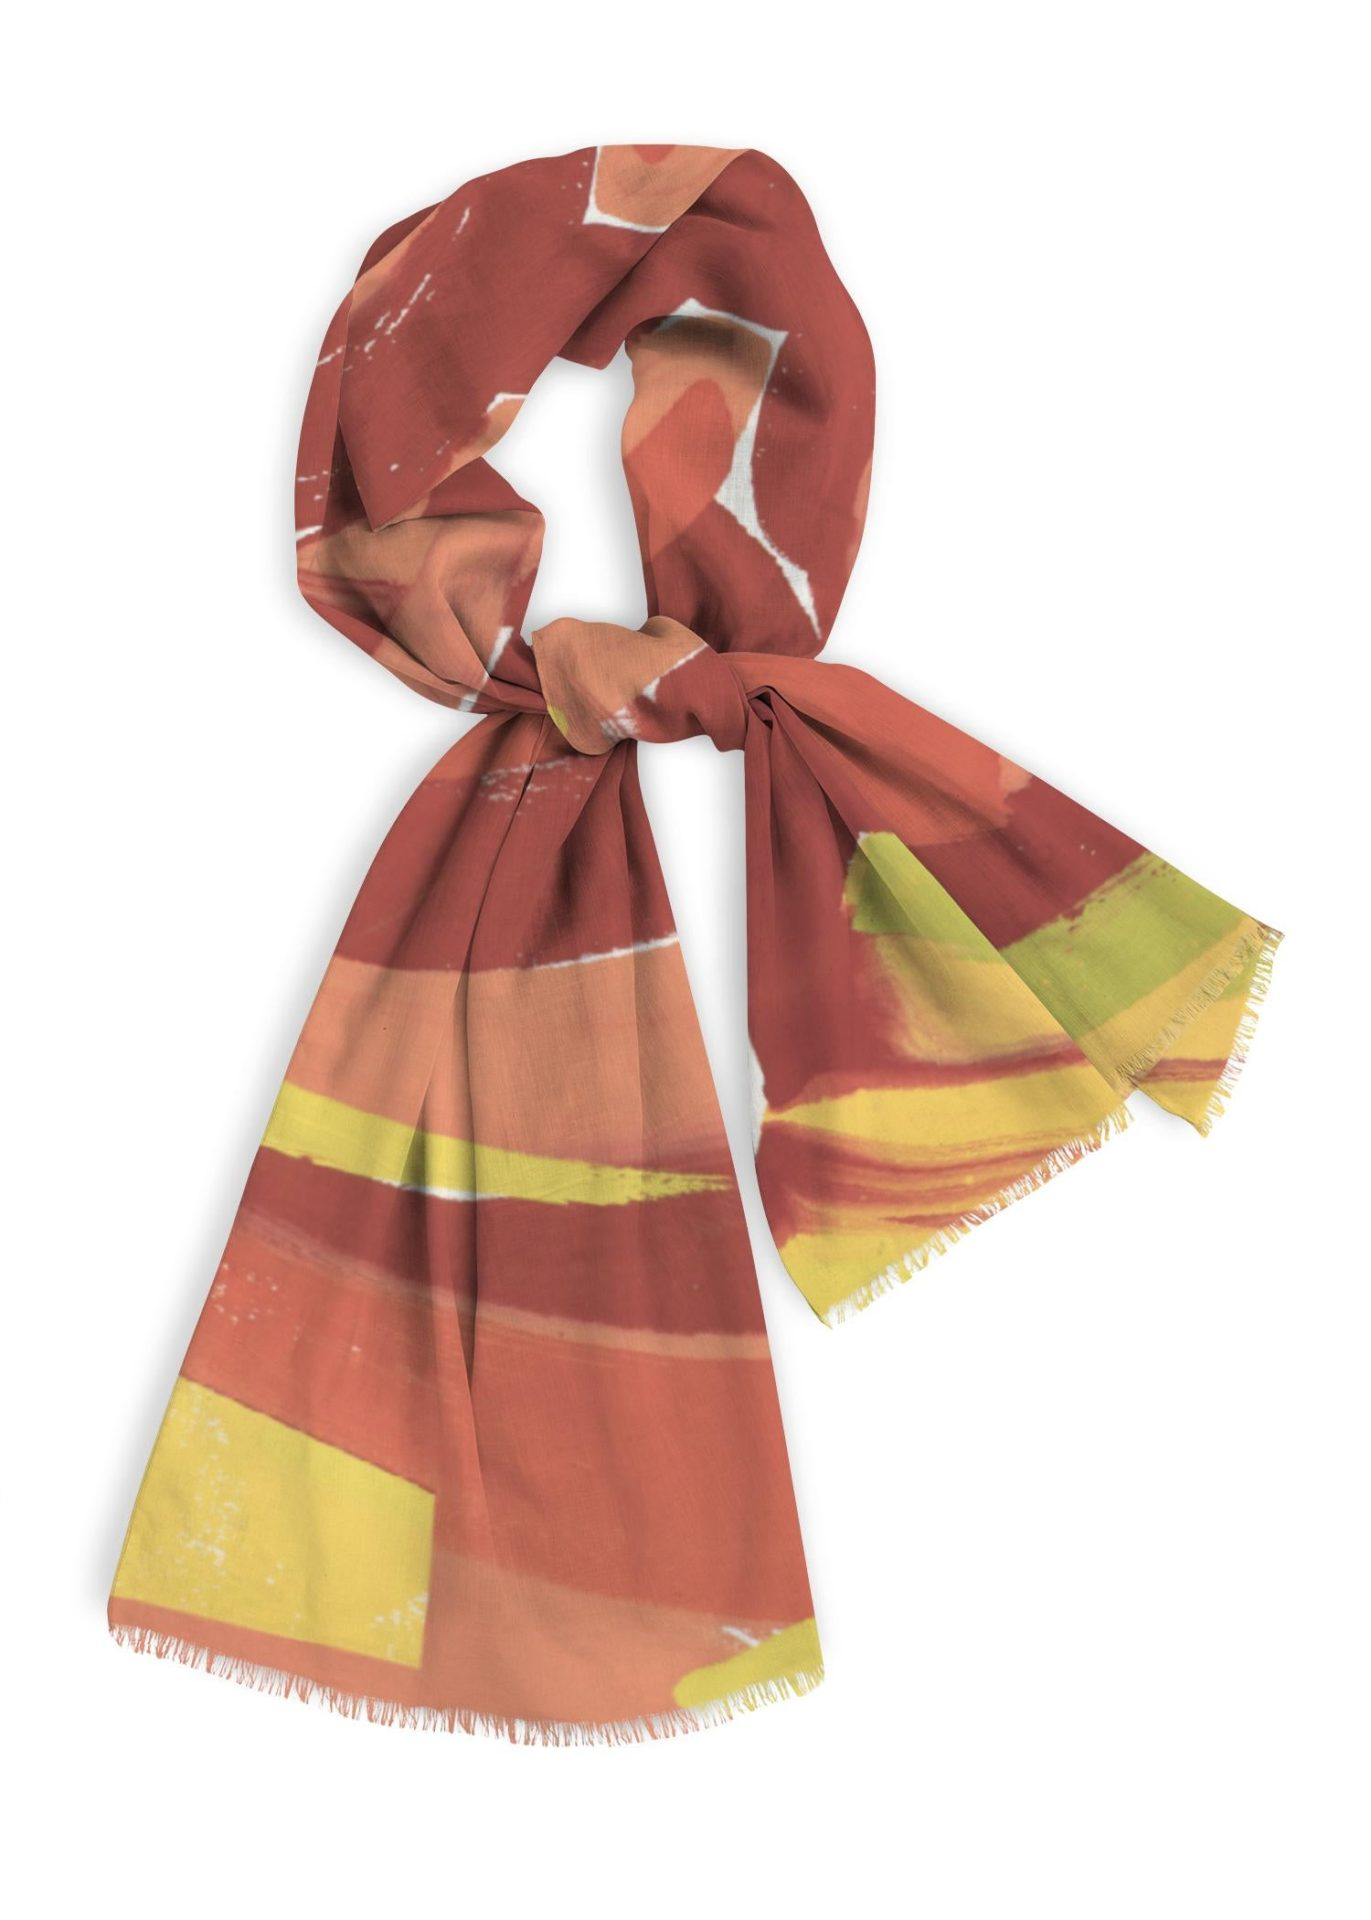 Natural cotton scarf, 28x78 inches, warm rusty reds with yellow